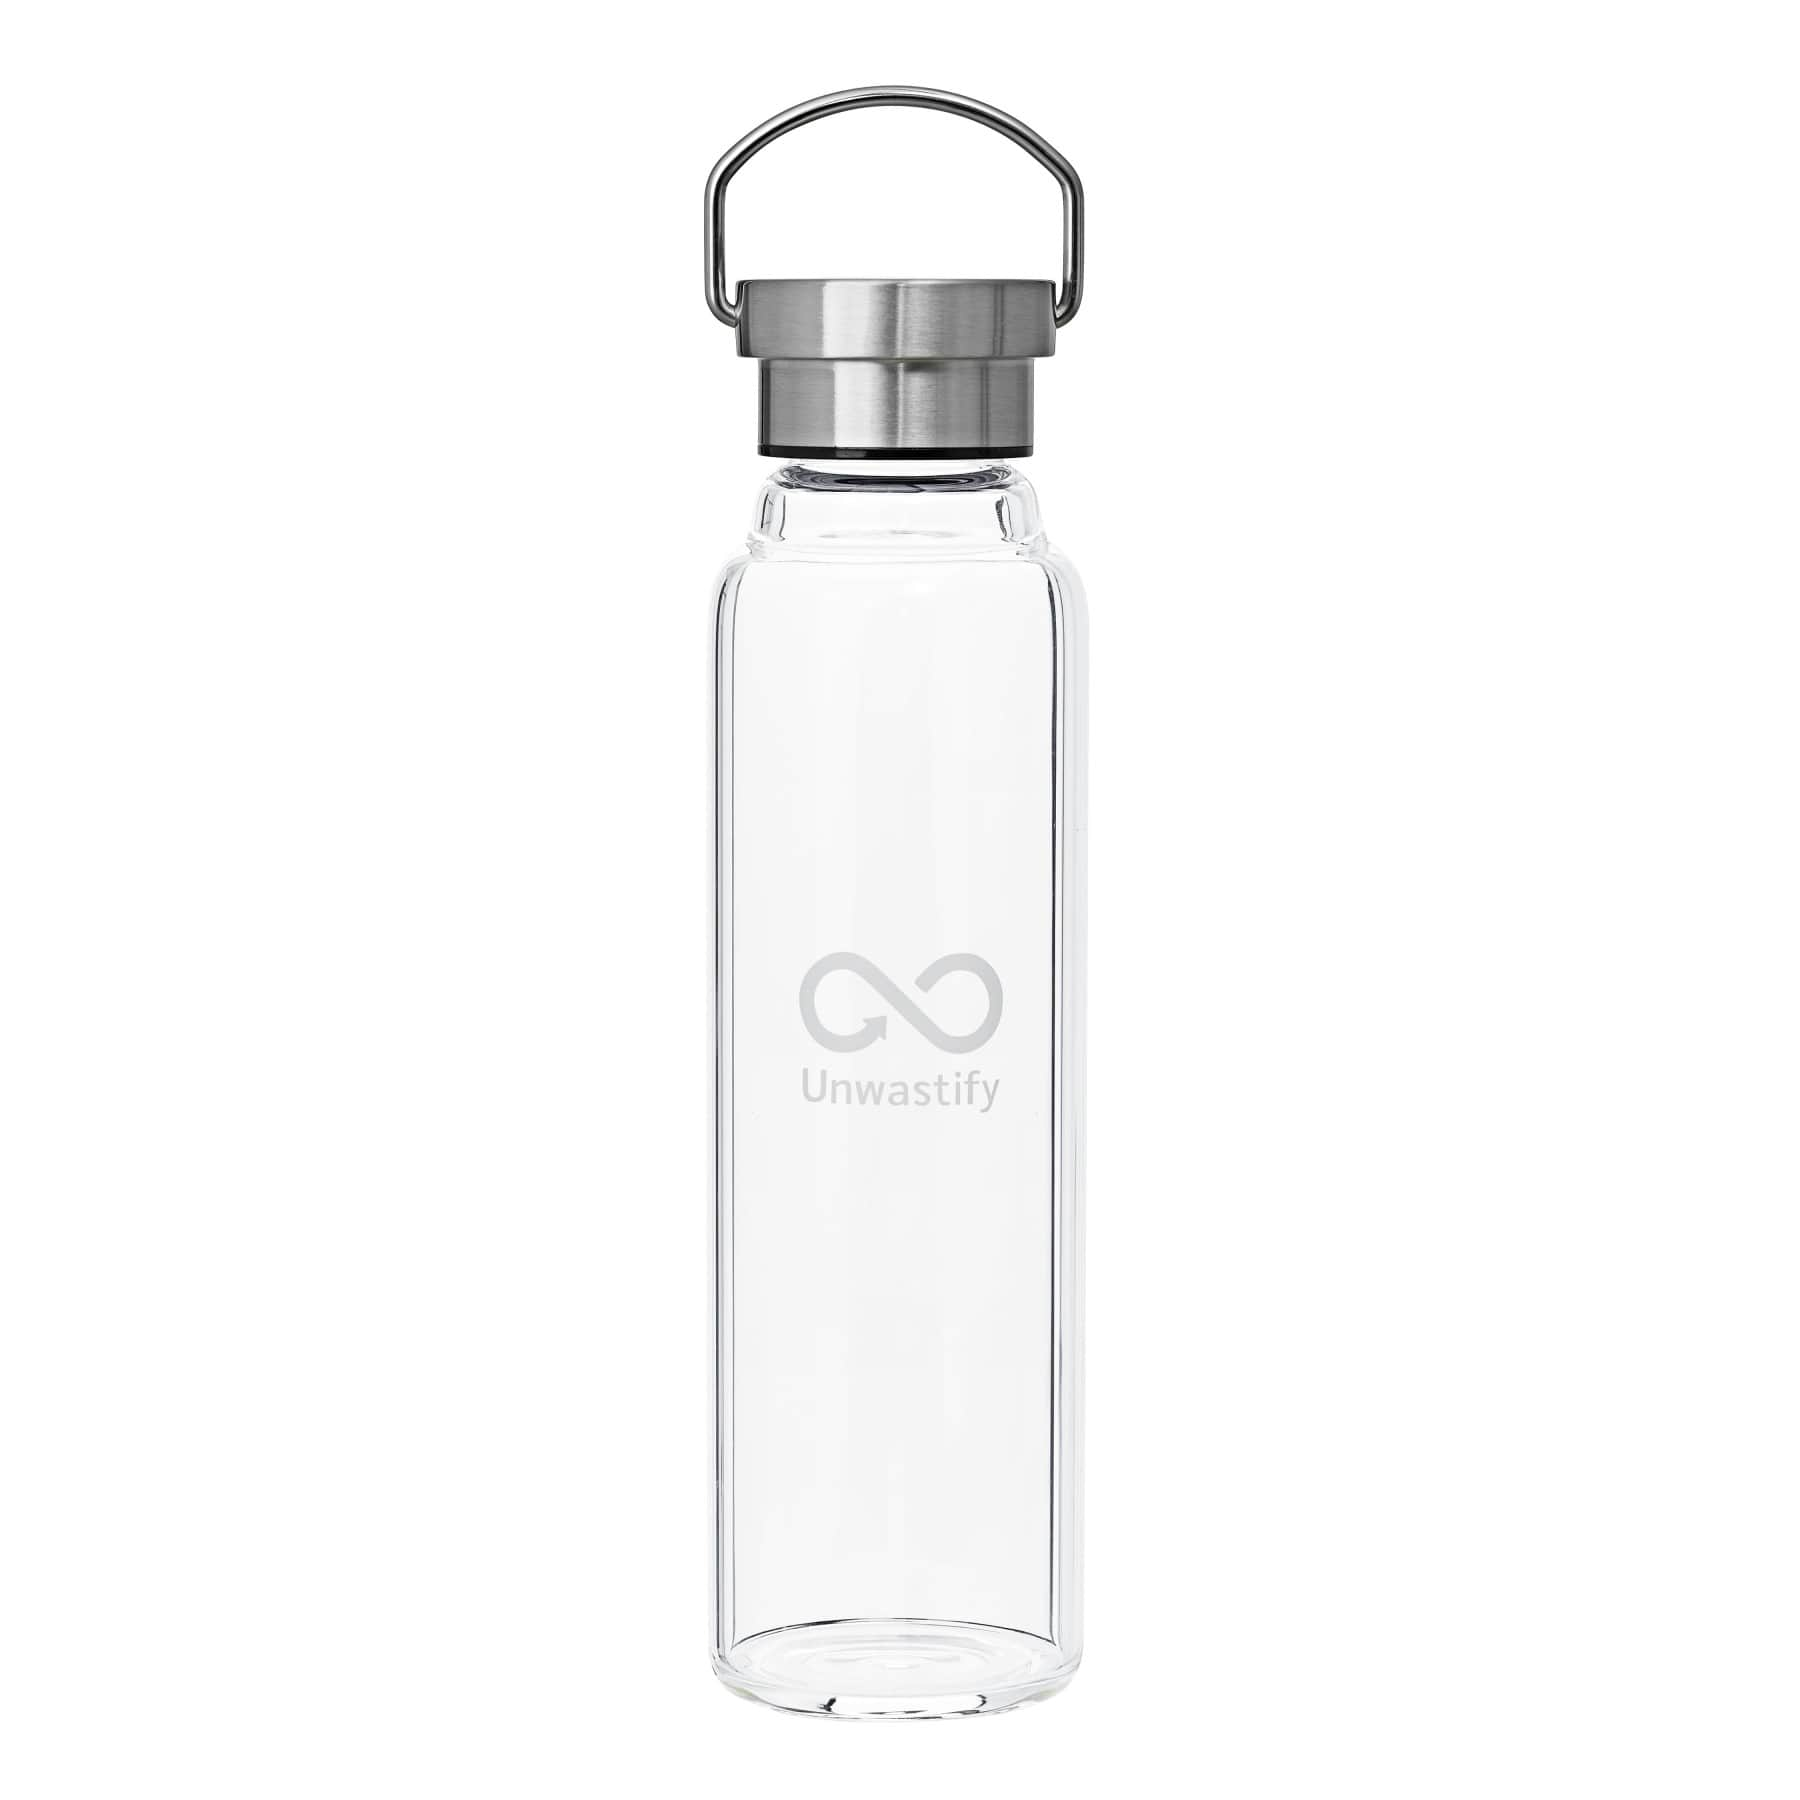 Unwastify 750 ml Glass Bottle